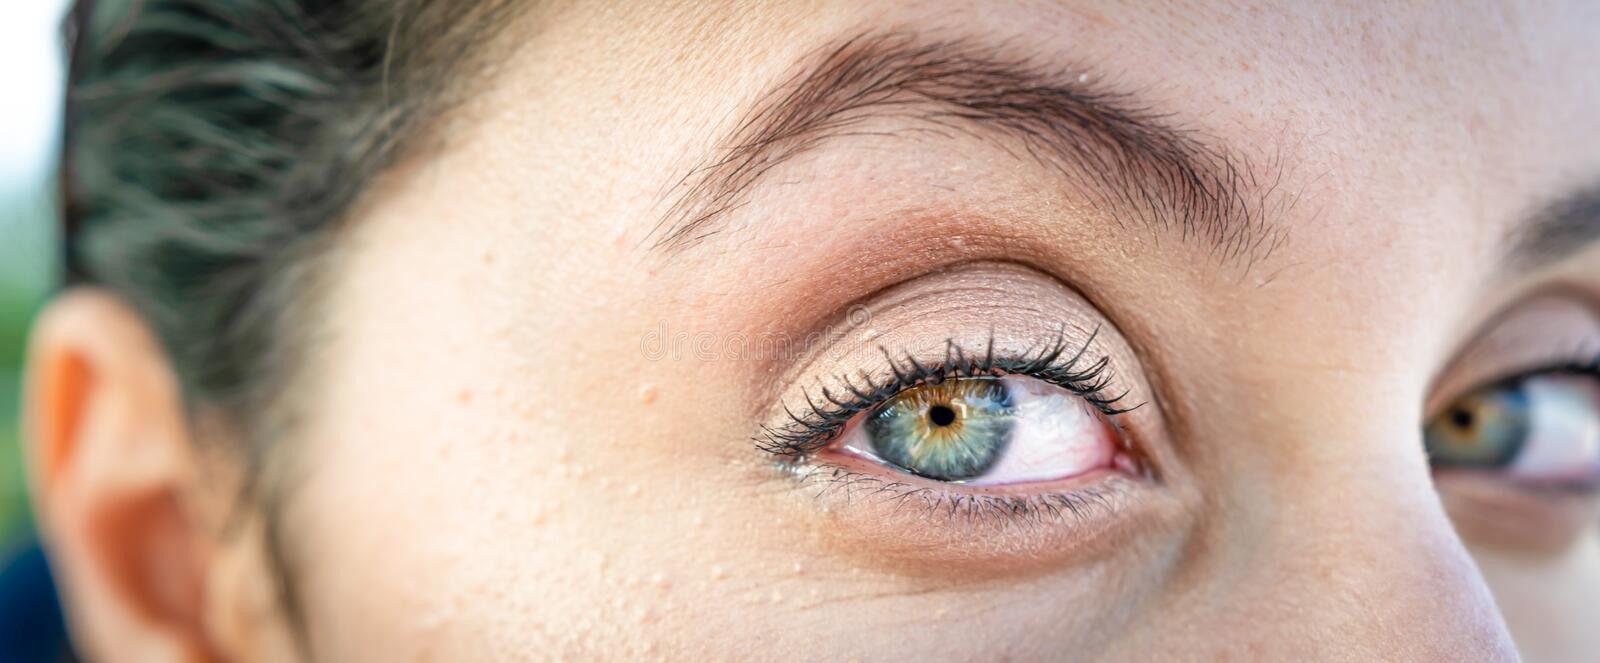 Eyes of tunisian girl. Panoramic macro image of beautiful  green female eyes and eyebrows. Middle eastern people face features with make up stock photography